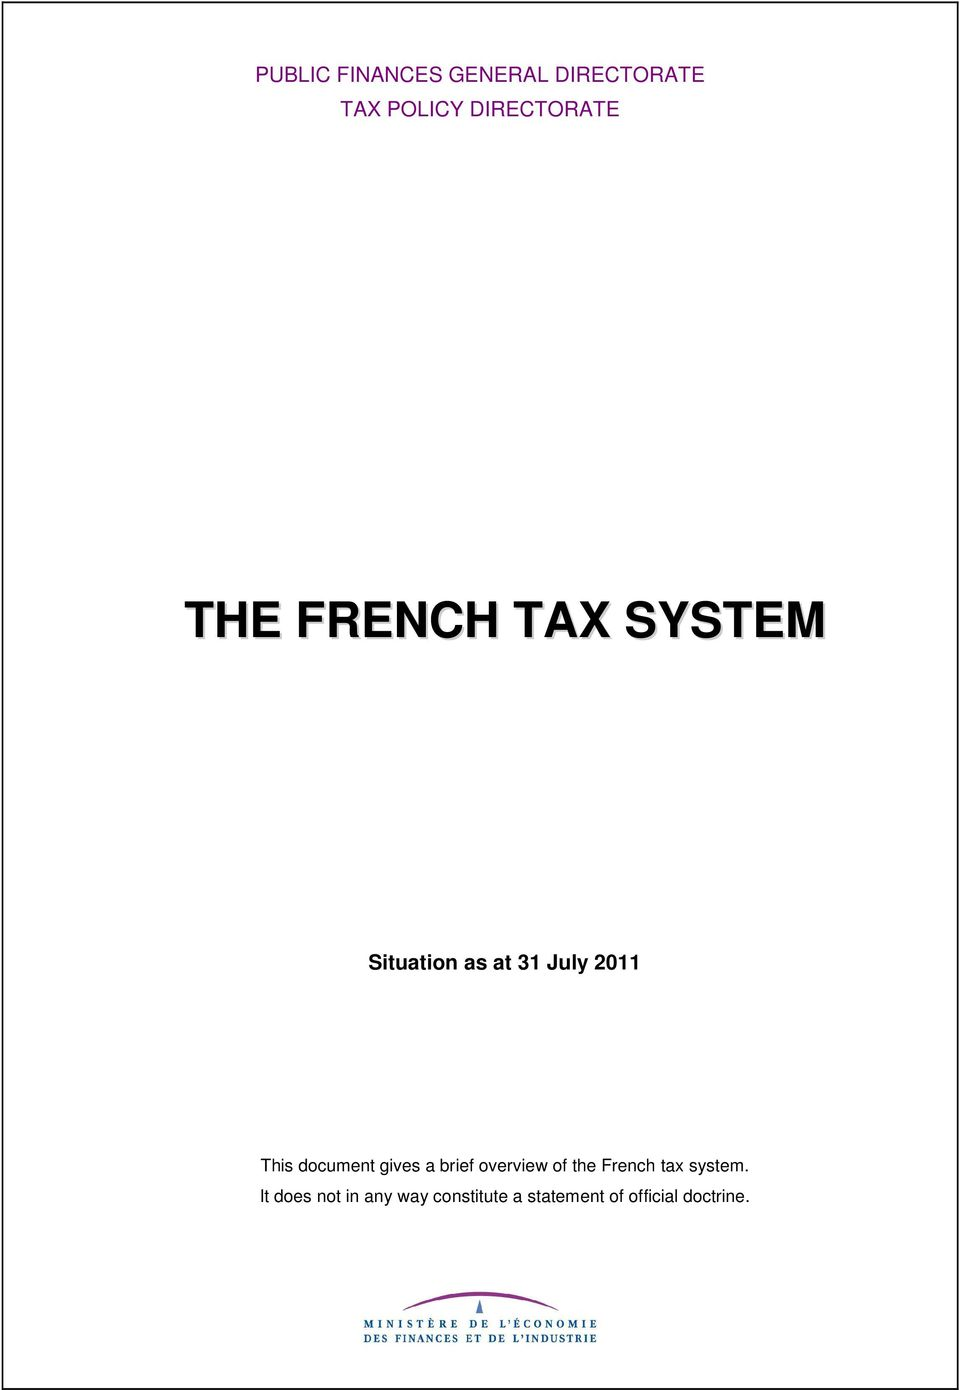 document gives a brief overview of the French tax system.